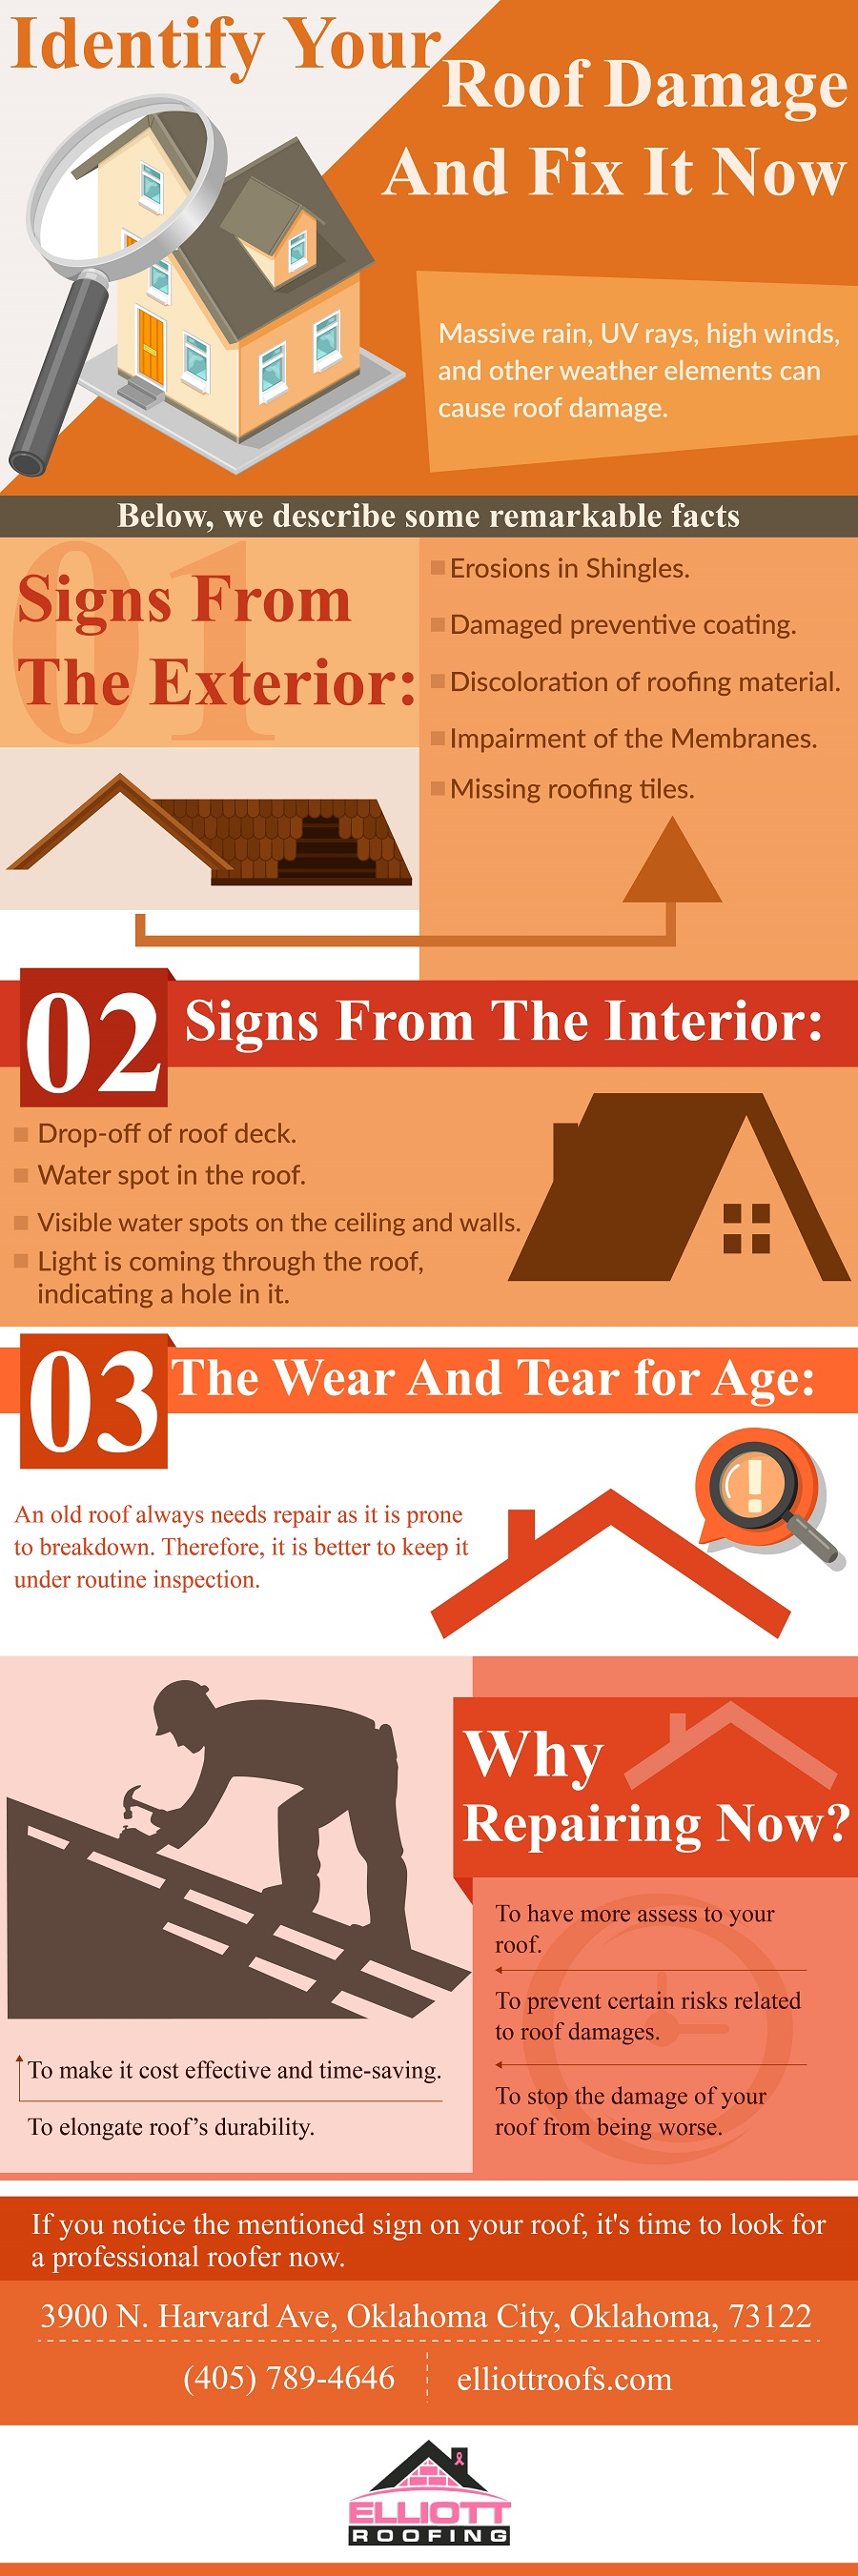 Identify Roof damage and fix it now